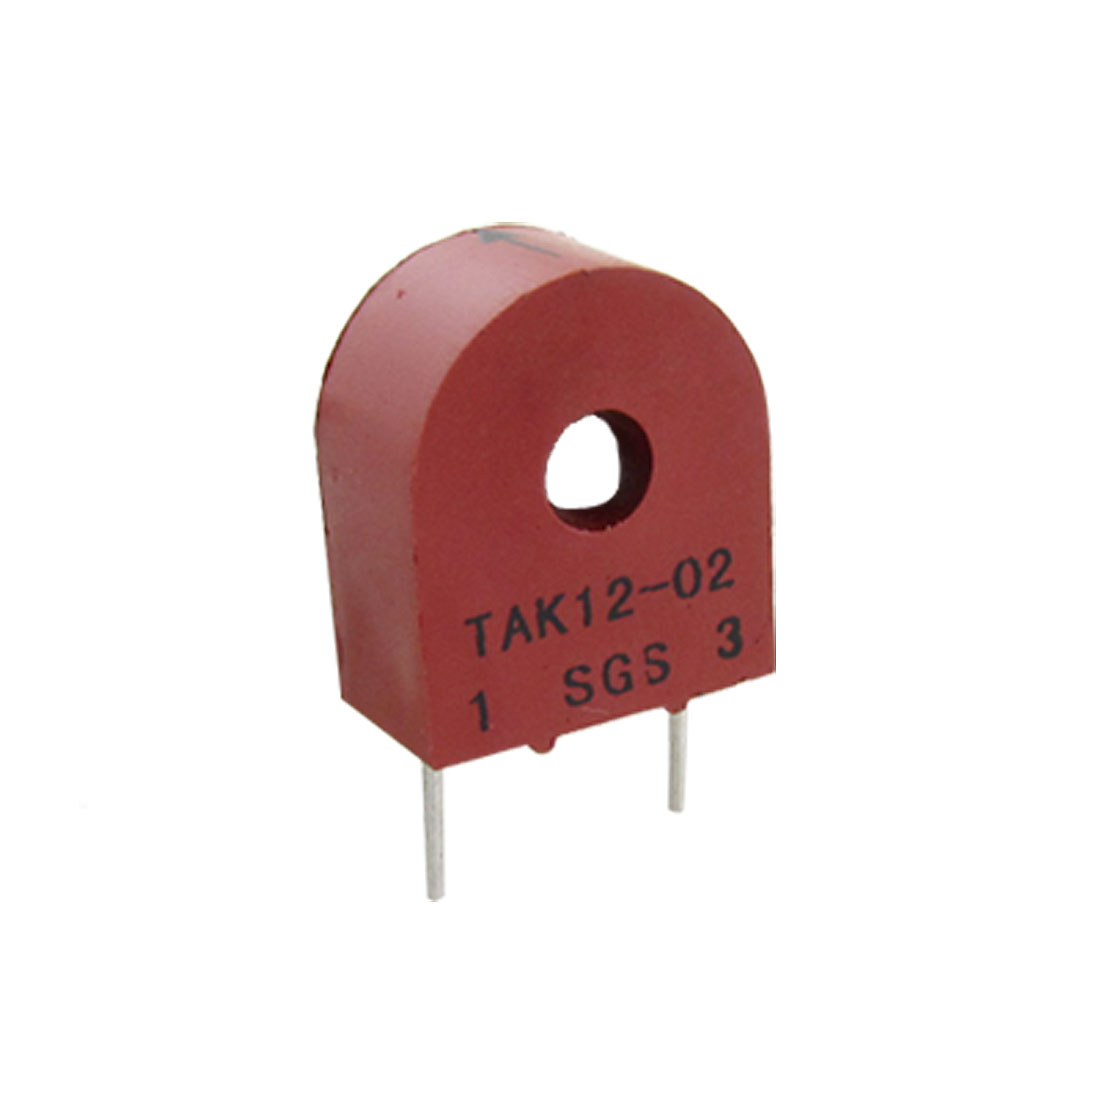 Epoxy Resin Embedding 2 Terminals Current Transformer TAK12-02